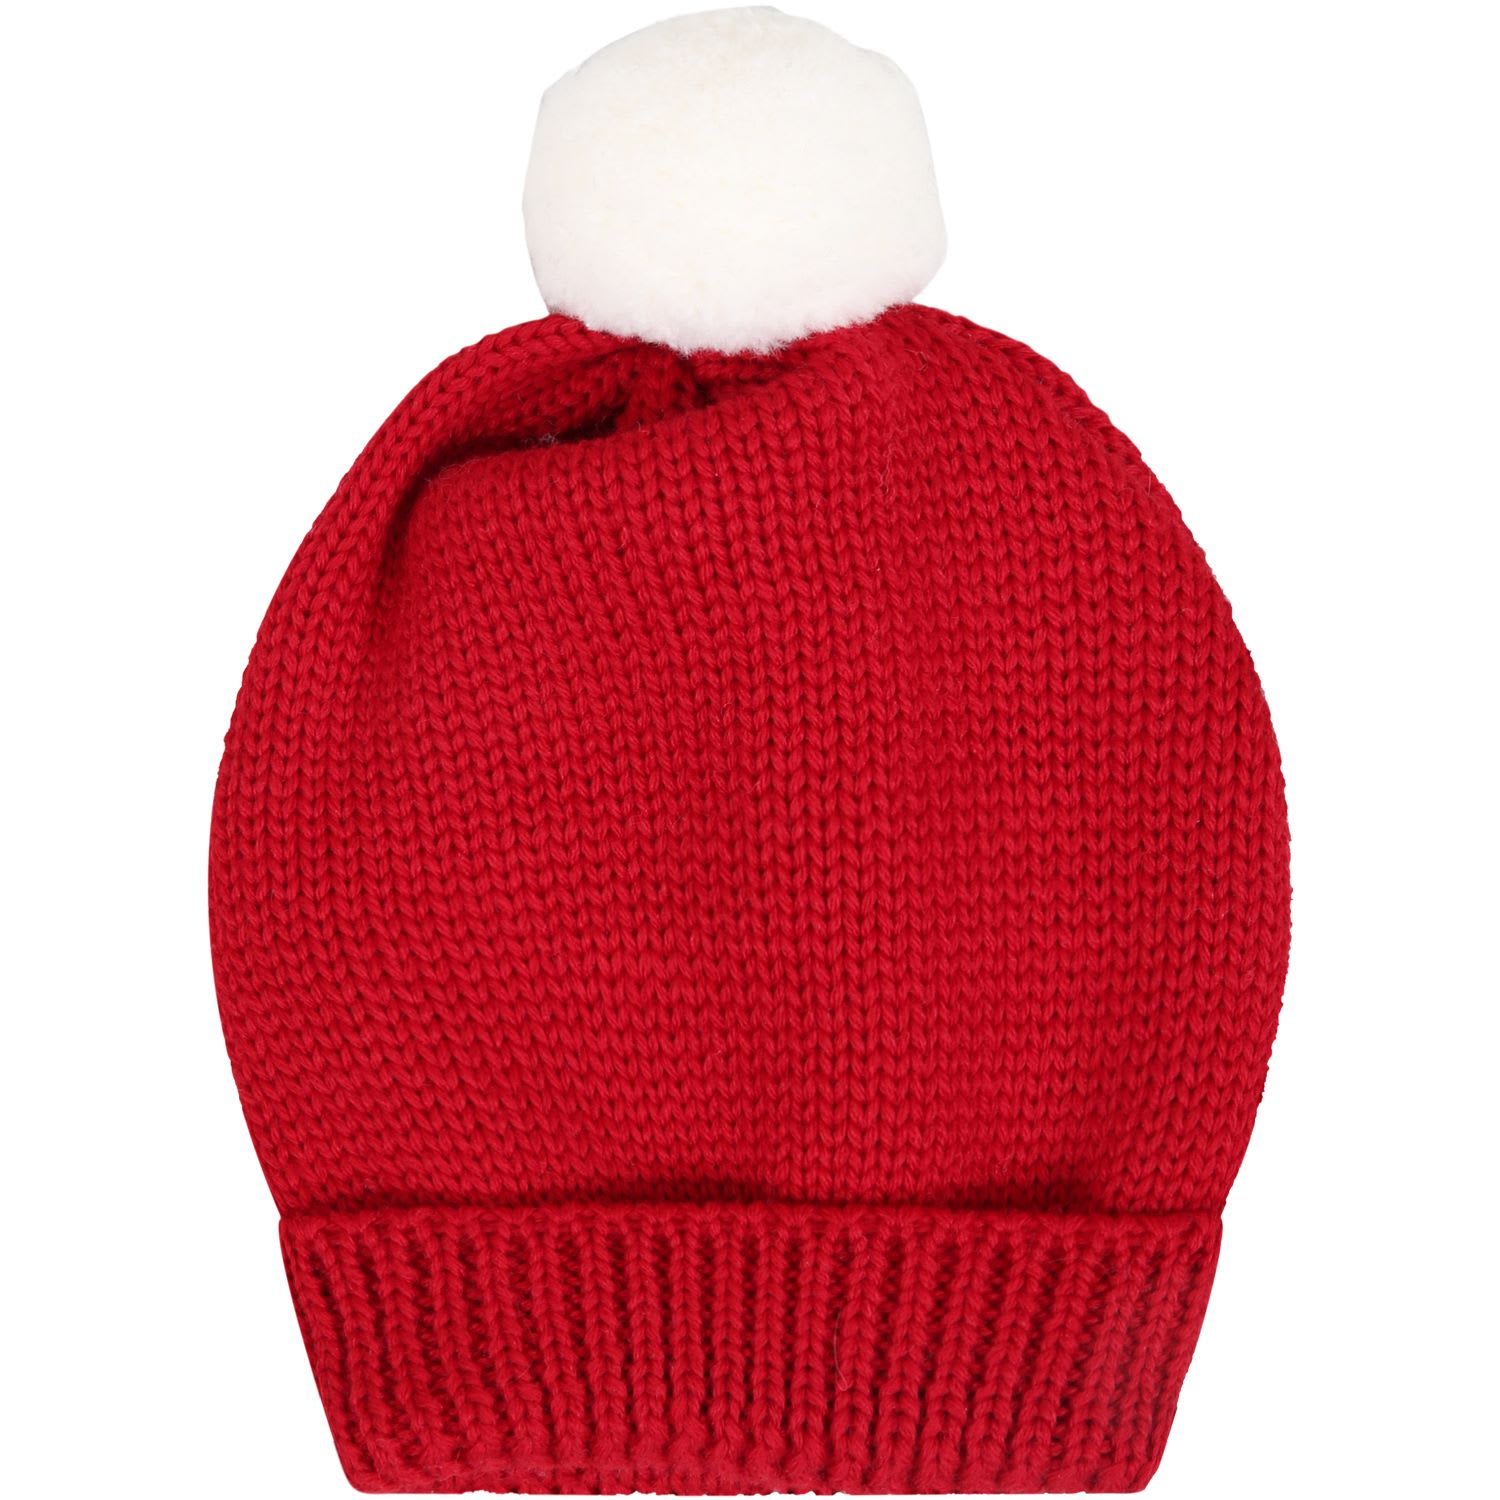 Red Hat For Babykids With Pompon